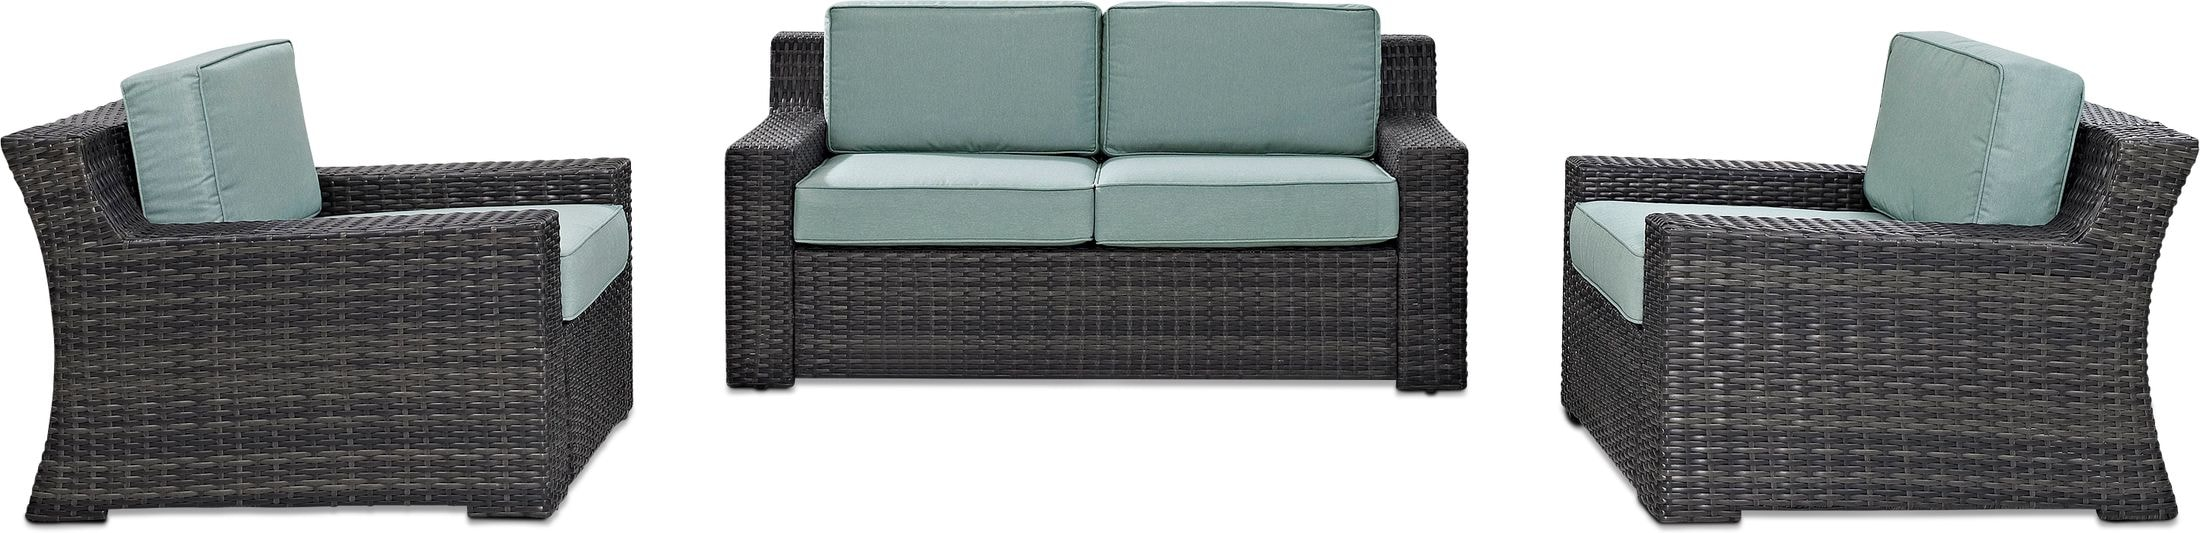 Outdoor Furniture - Tethys Outdoor Loveseat and 2 Chairs Set